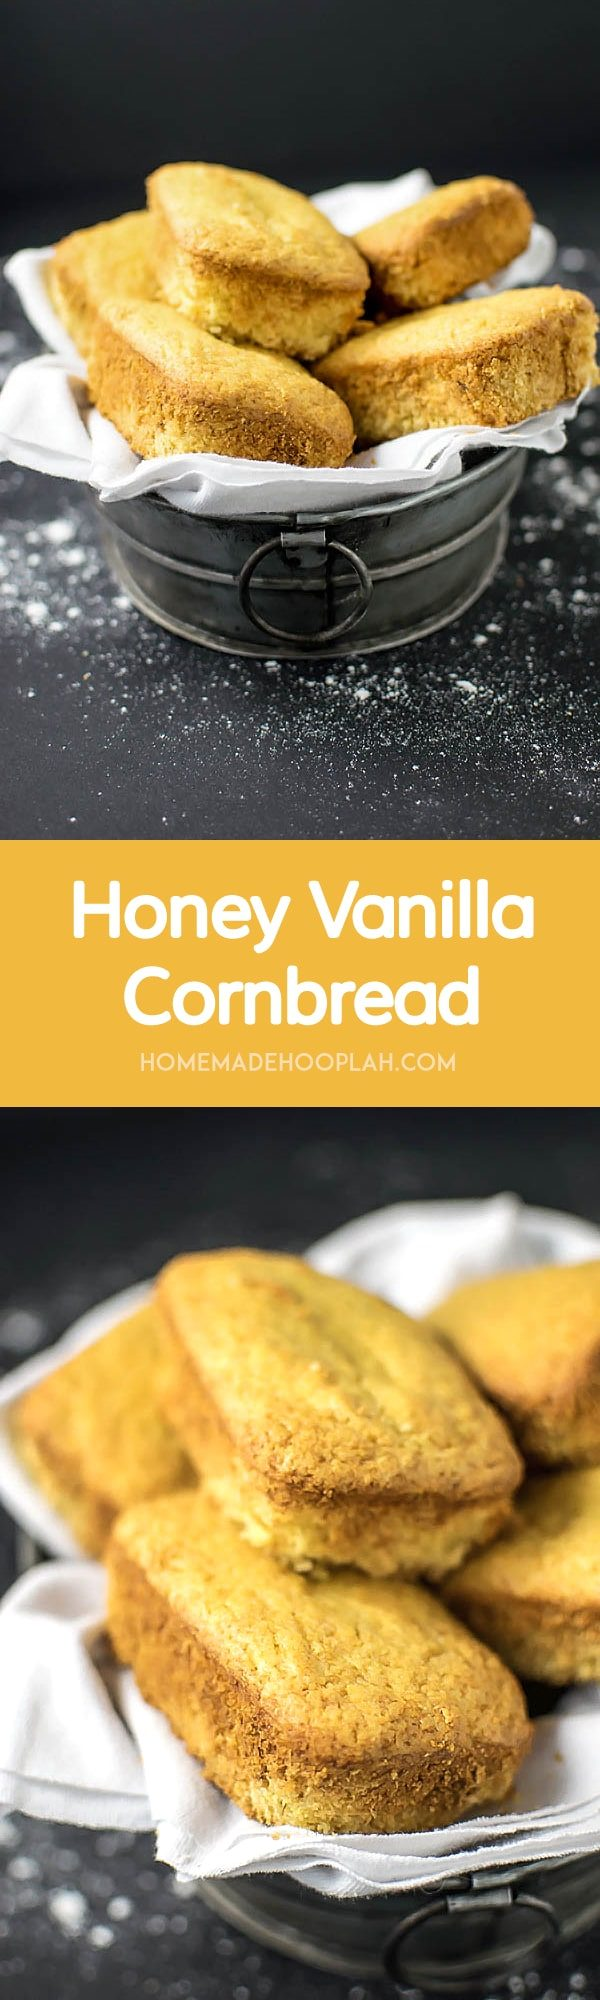 Honey Vanilla Cornbread! Classic honey cornbread with an extra dose of vanilla. | HomemadeHooplah.com